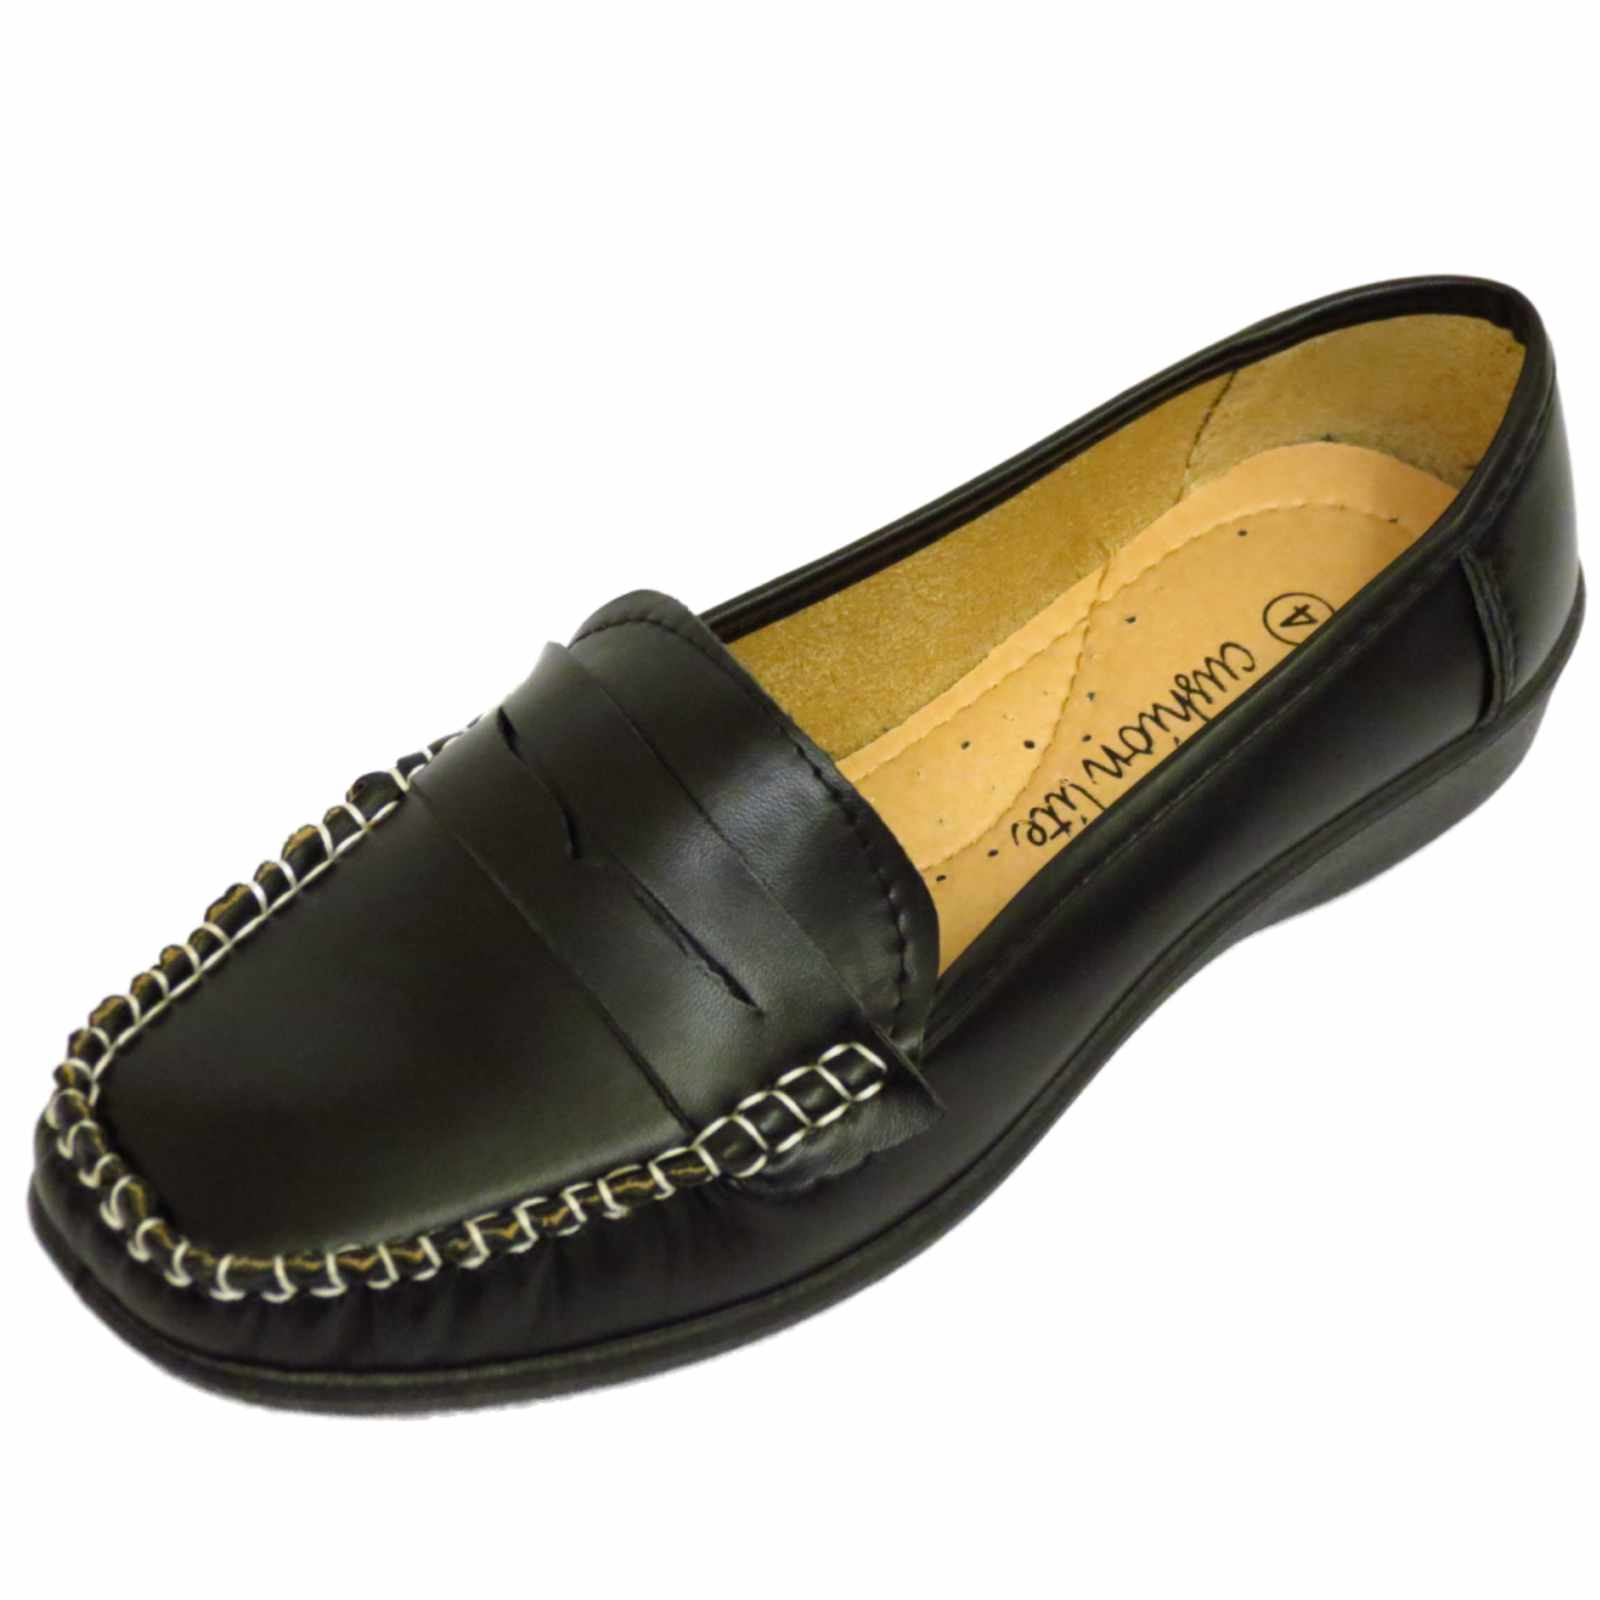 Dexter Shoes Womens Loafers